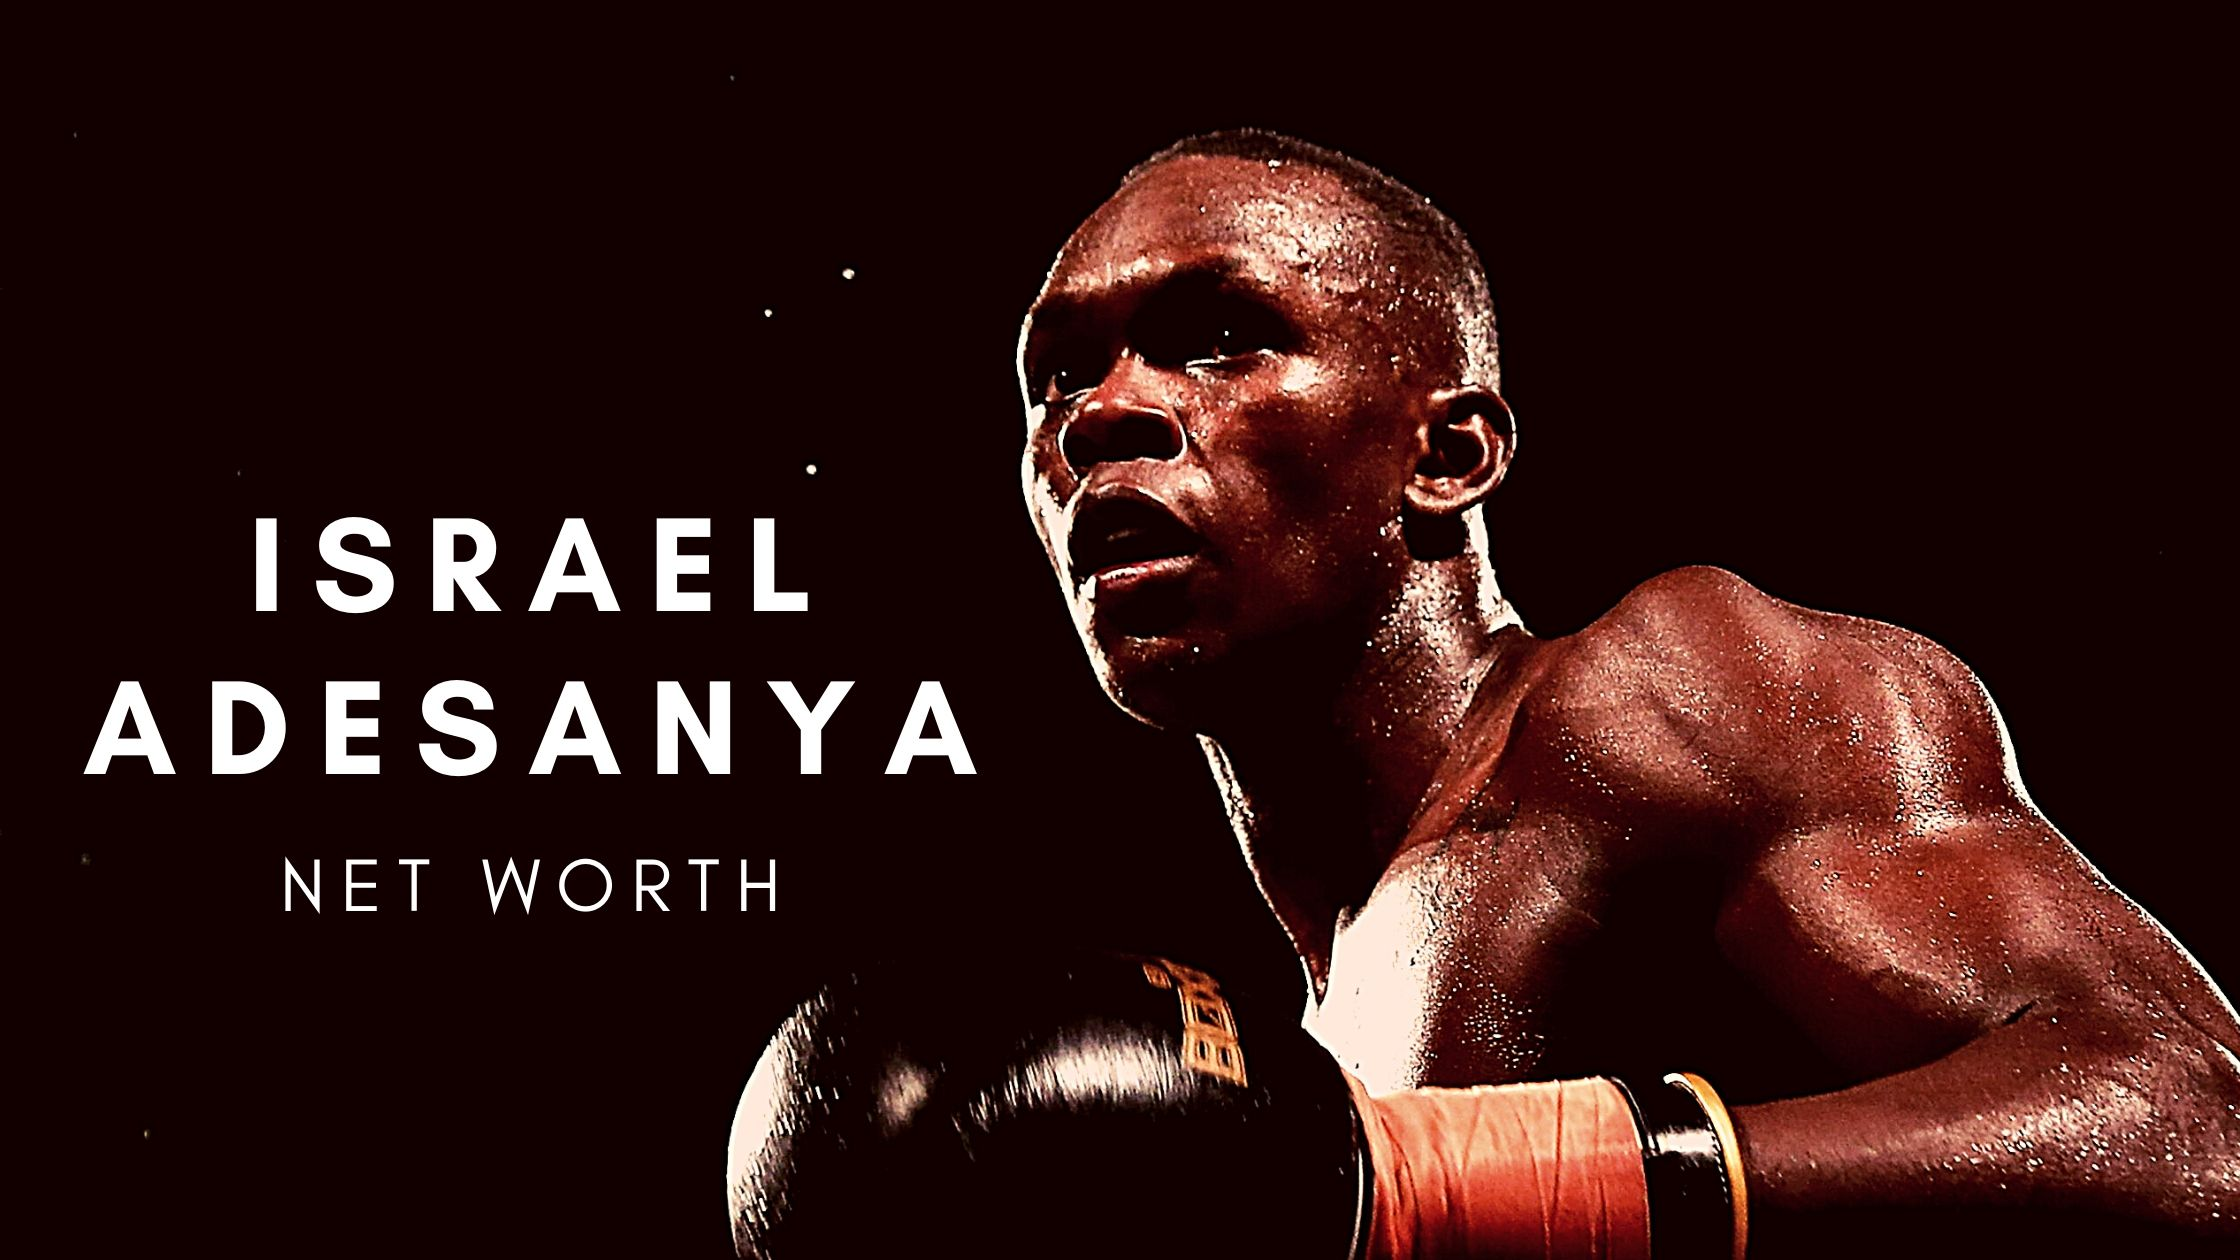 Israel Adesanya Next Fight Date 2020 - What Is The Net Worth Of Ufc Star Israel Adesanya In The Year 2021